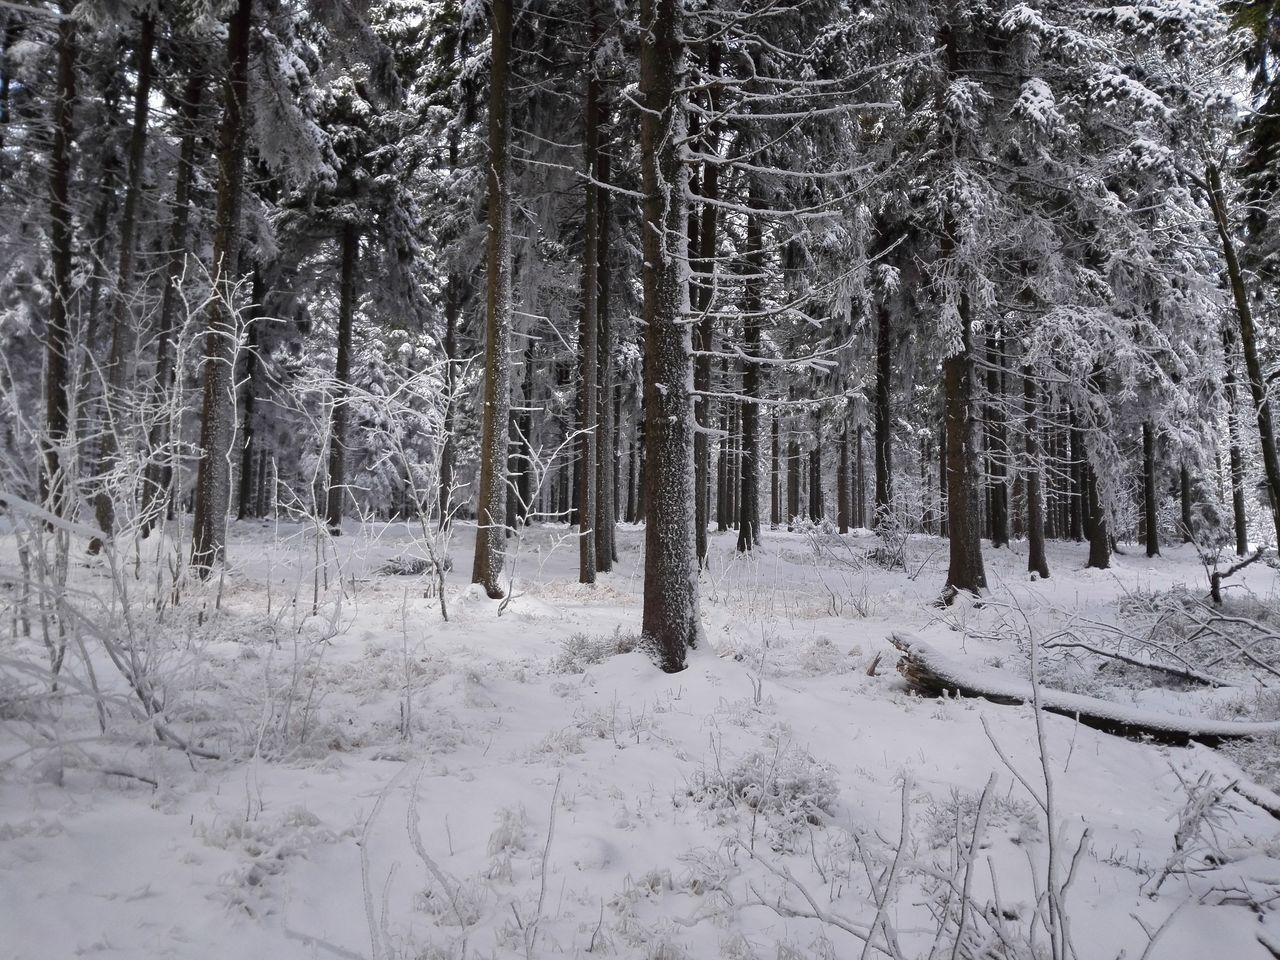 snow, winter, cold temperature, tree, forest, nature, tranquility, tranquil scene, tree trunk, beauty in nature, no people, landscape, day, outdoors, scenics